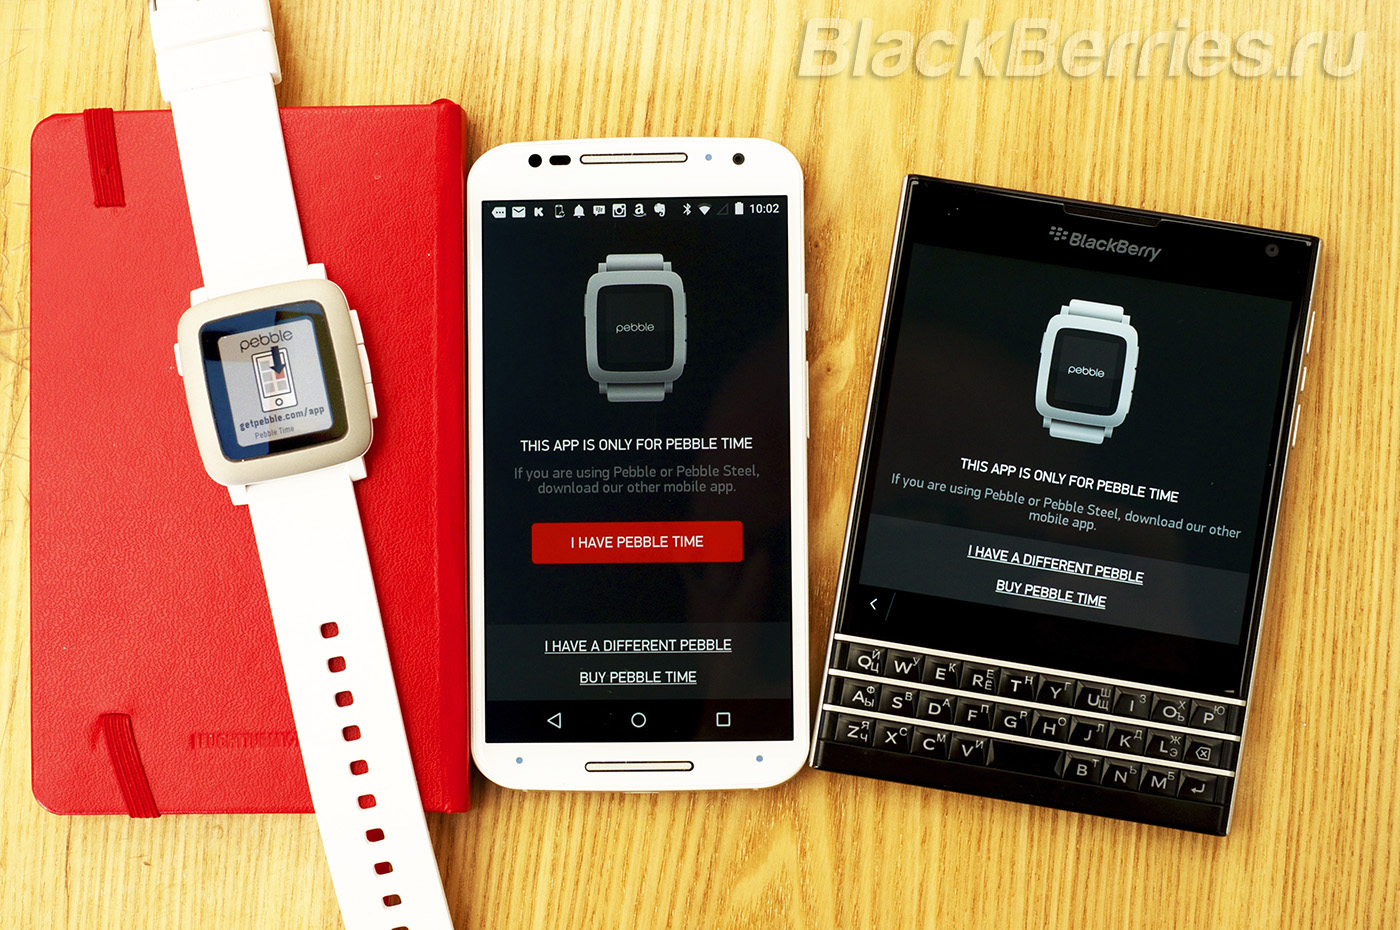 BlackBerry-Passport-Pebble-Time-30